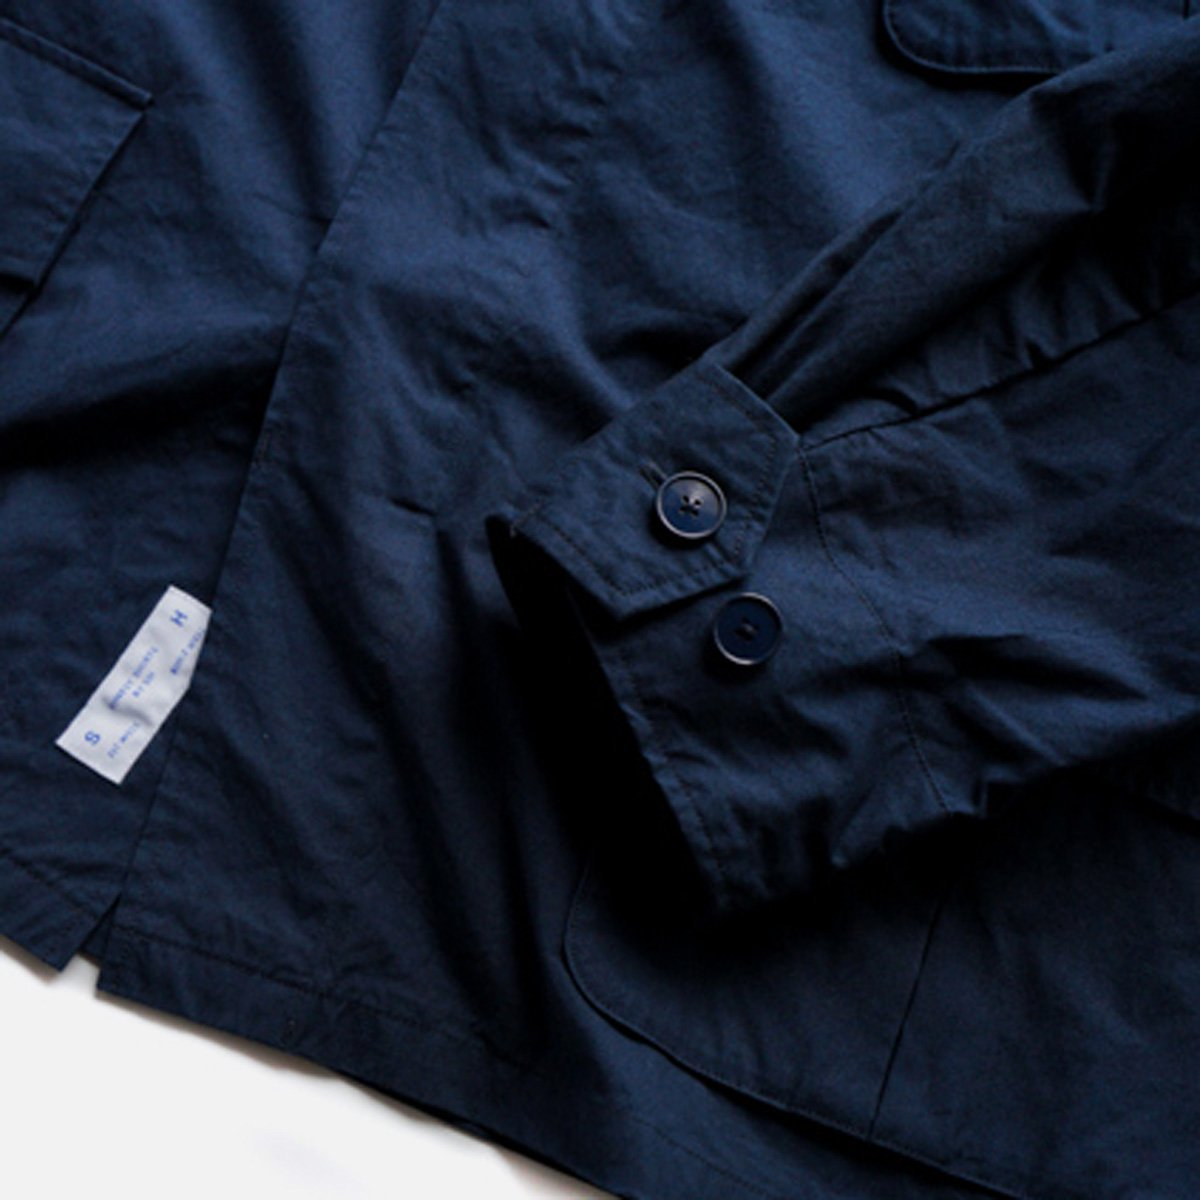 SH  FATIGUE SHIRT  (NAVY)4